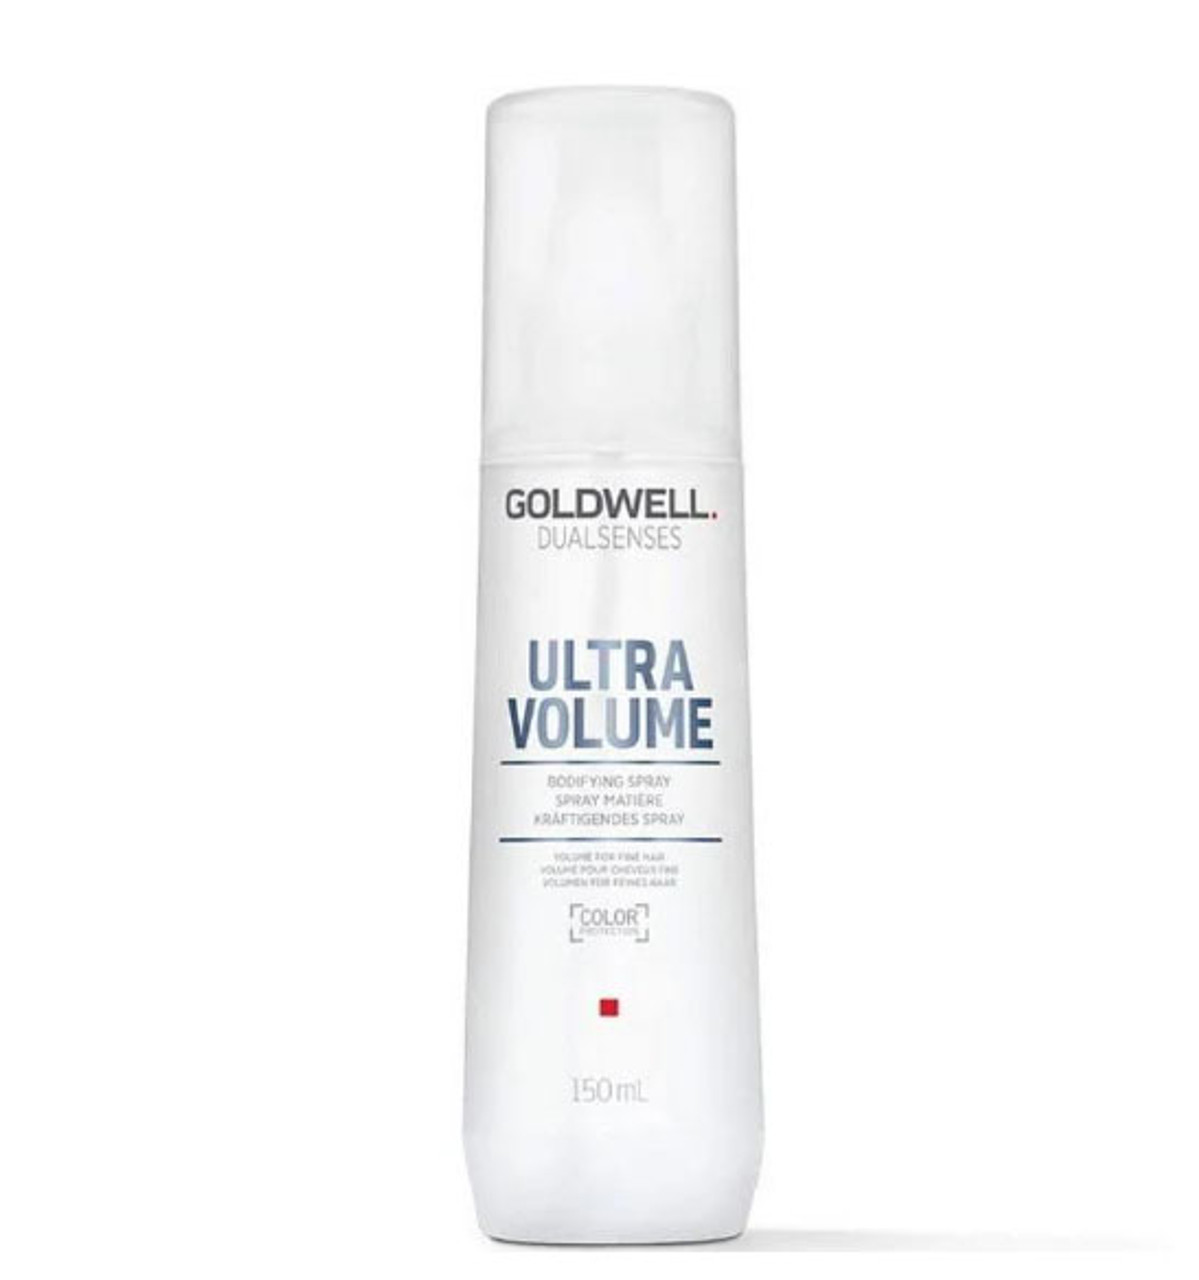 Goldwell Dualsenses Ultra Volume Leave-In Boost Spray 150ml